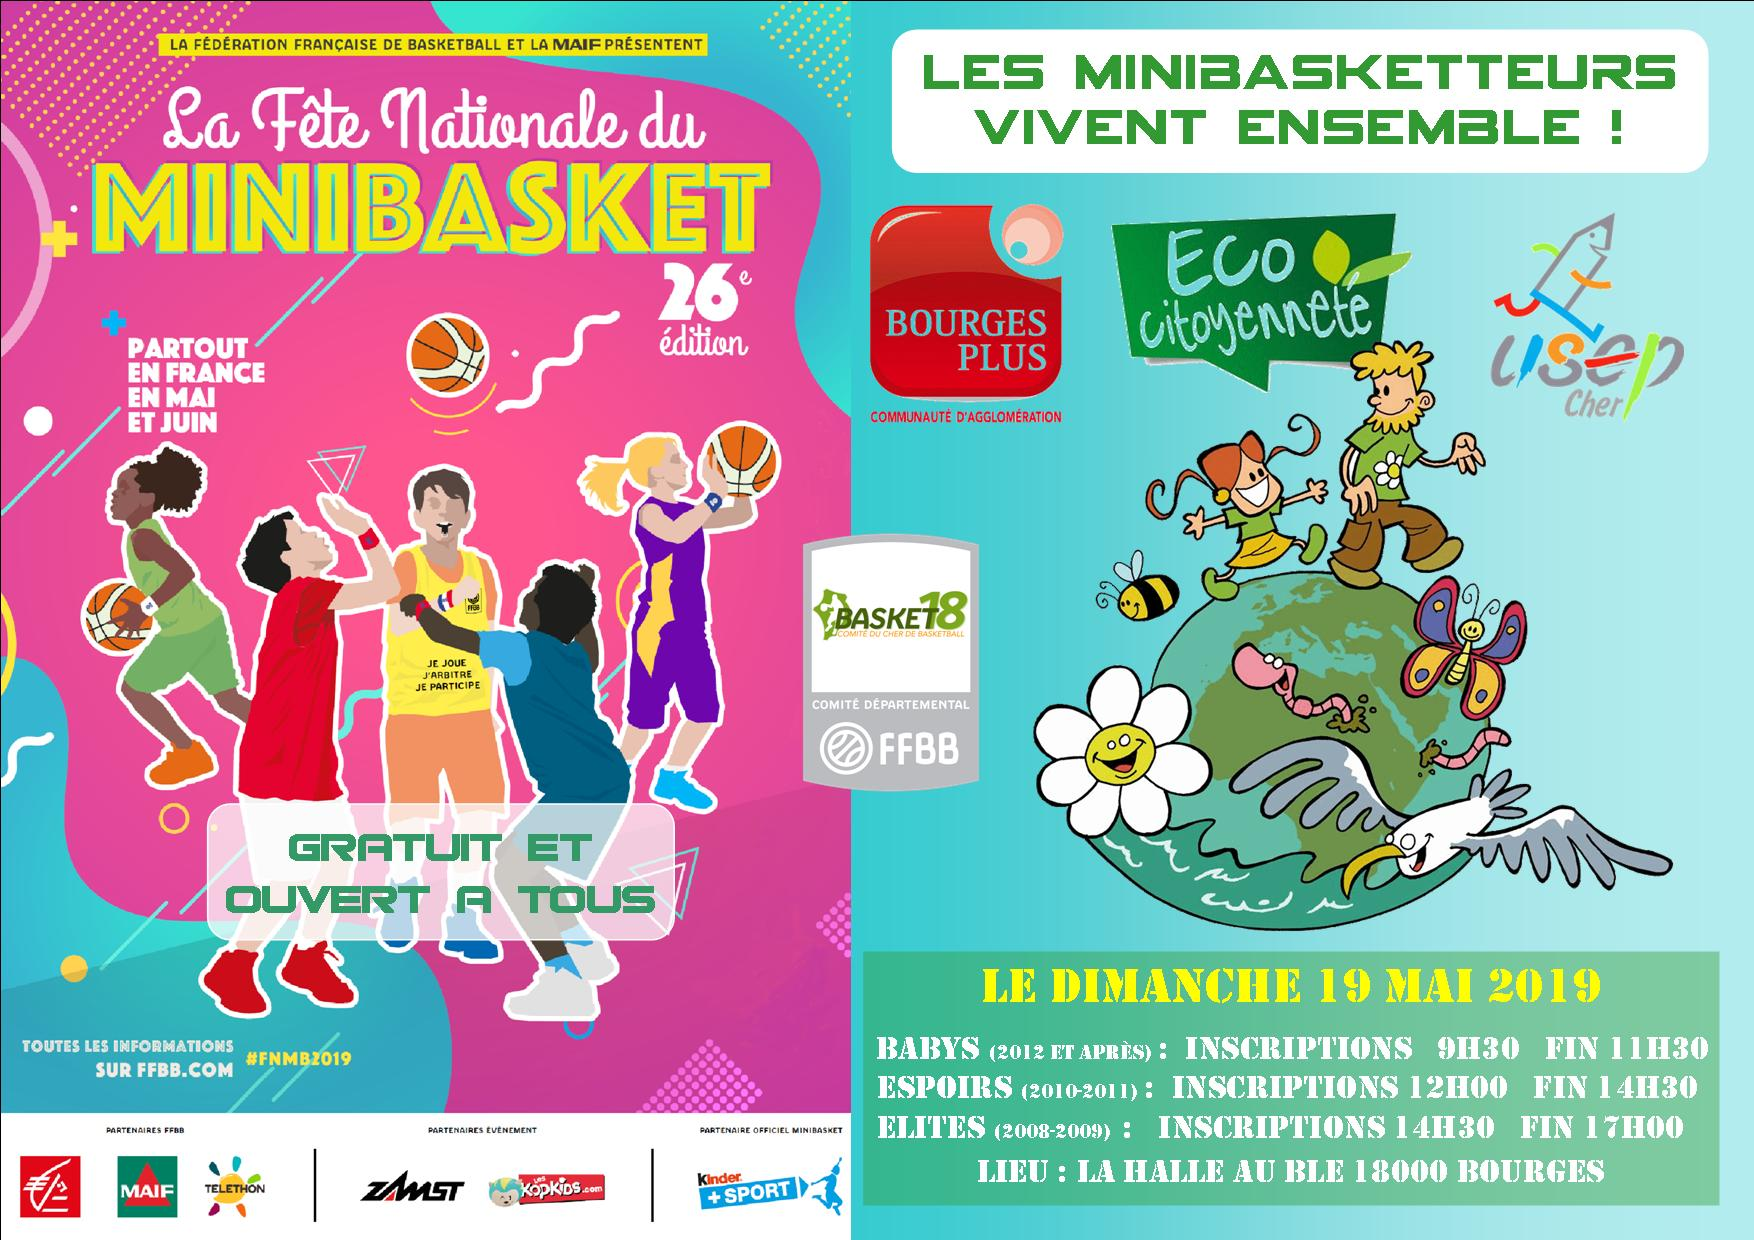 Fête nationale du minibasket 2019